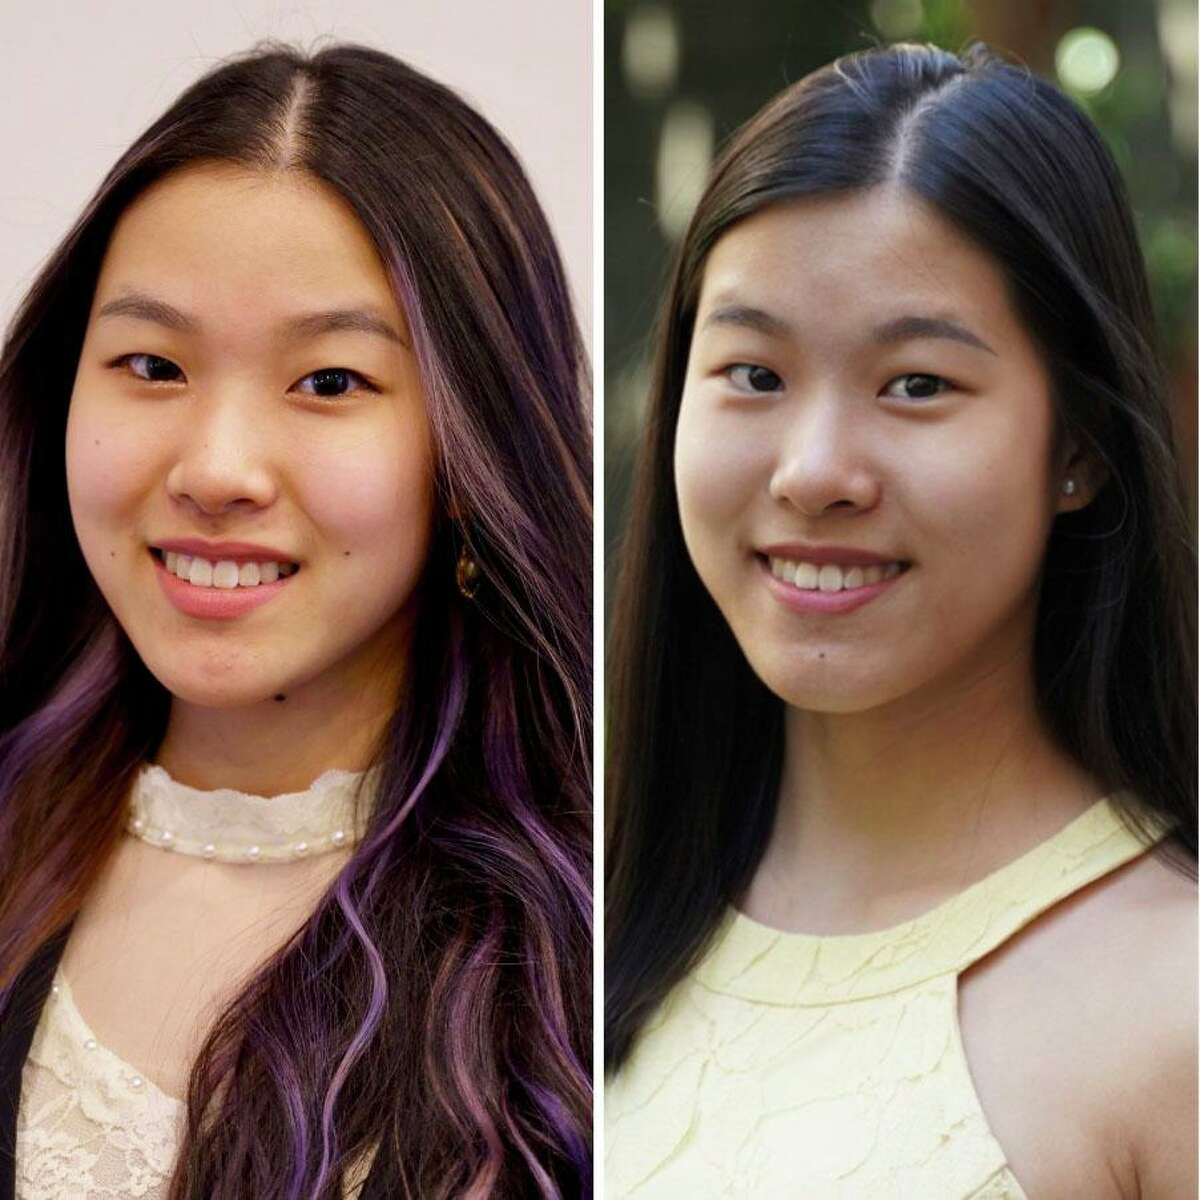 Bellaire High School seniors and twin sisters Annie, left, and Shirley Zhu are two of nine valedictorians at the Houston ISD campus. HISD high schools typically have one or two valedictorians, but the nine Bellaire High seniors each notched identical 5.0 GPAs..